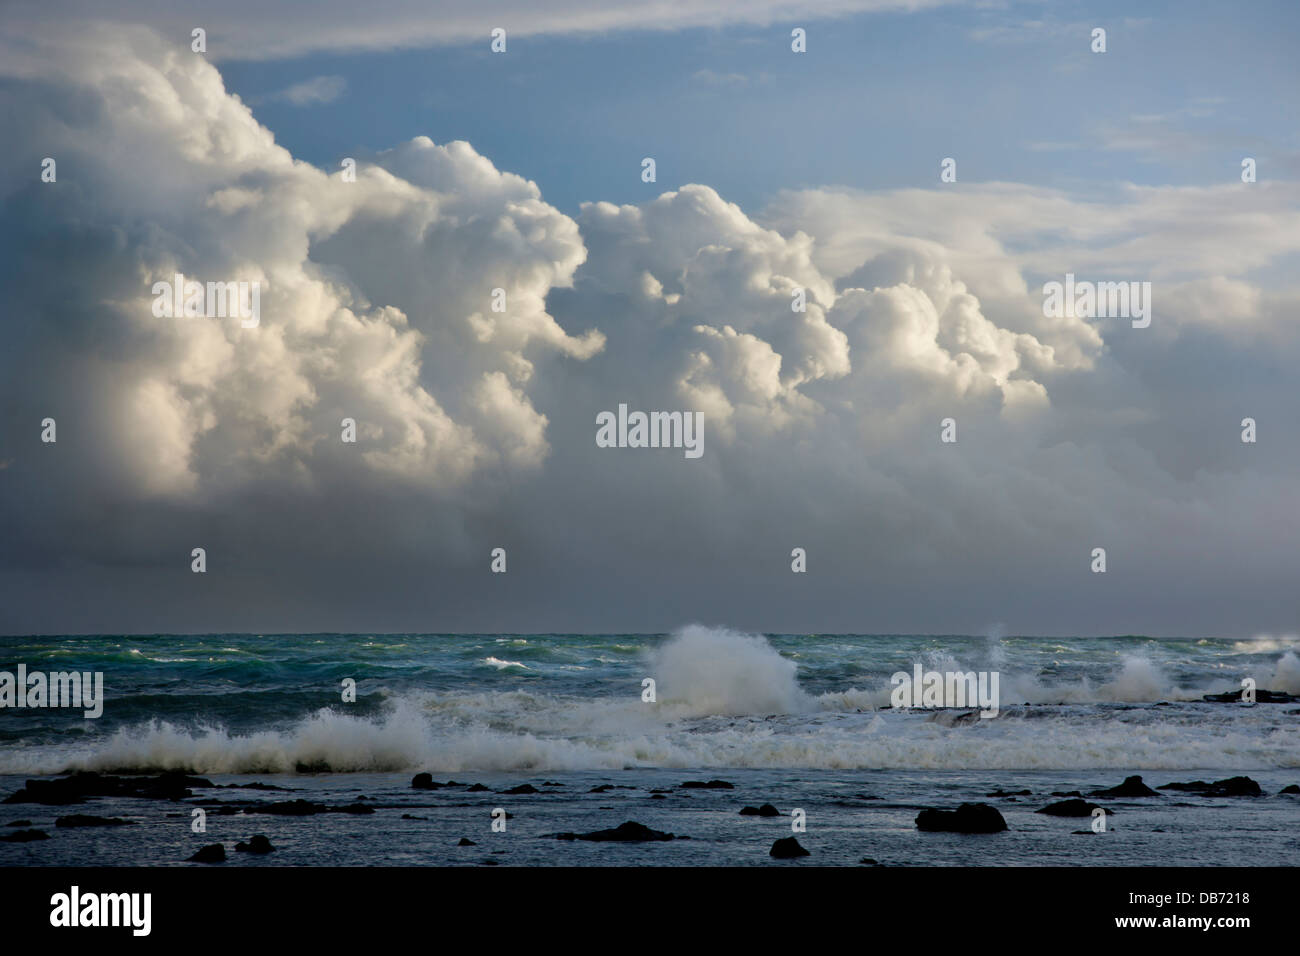 South Pacific, New Zealand, South Island. Storm clouds roll down the coastline at Curio Bay. - Stock Image